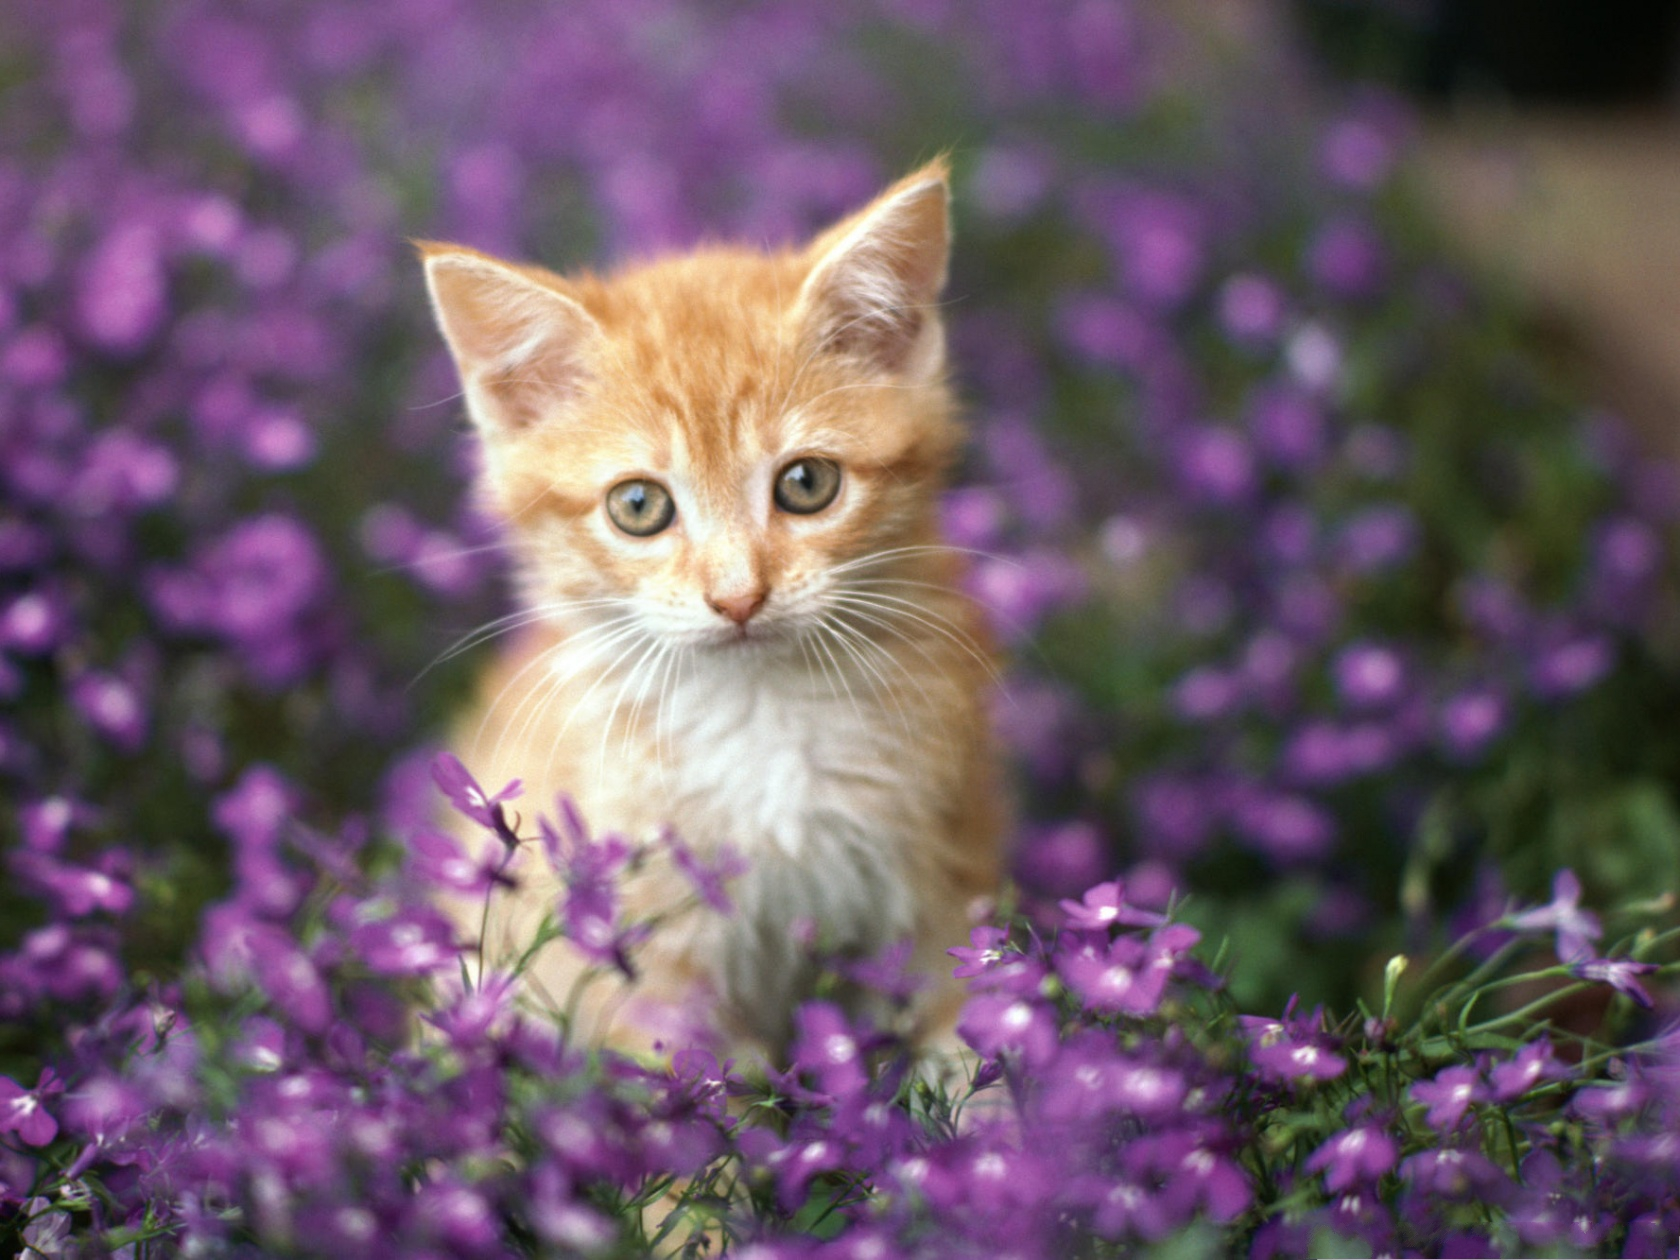 click to free download the wallpaper--Cute Cats Image, Kitten Among Purple Flowers, Getting Amazed 1600X1200 free wallpaper download